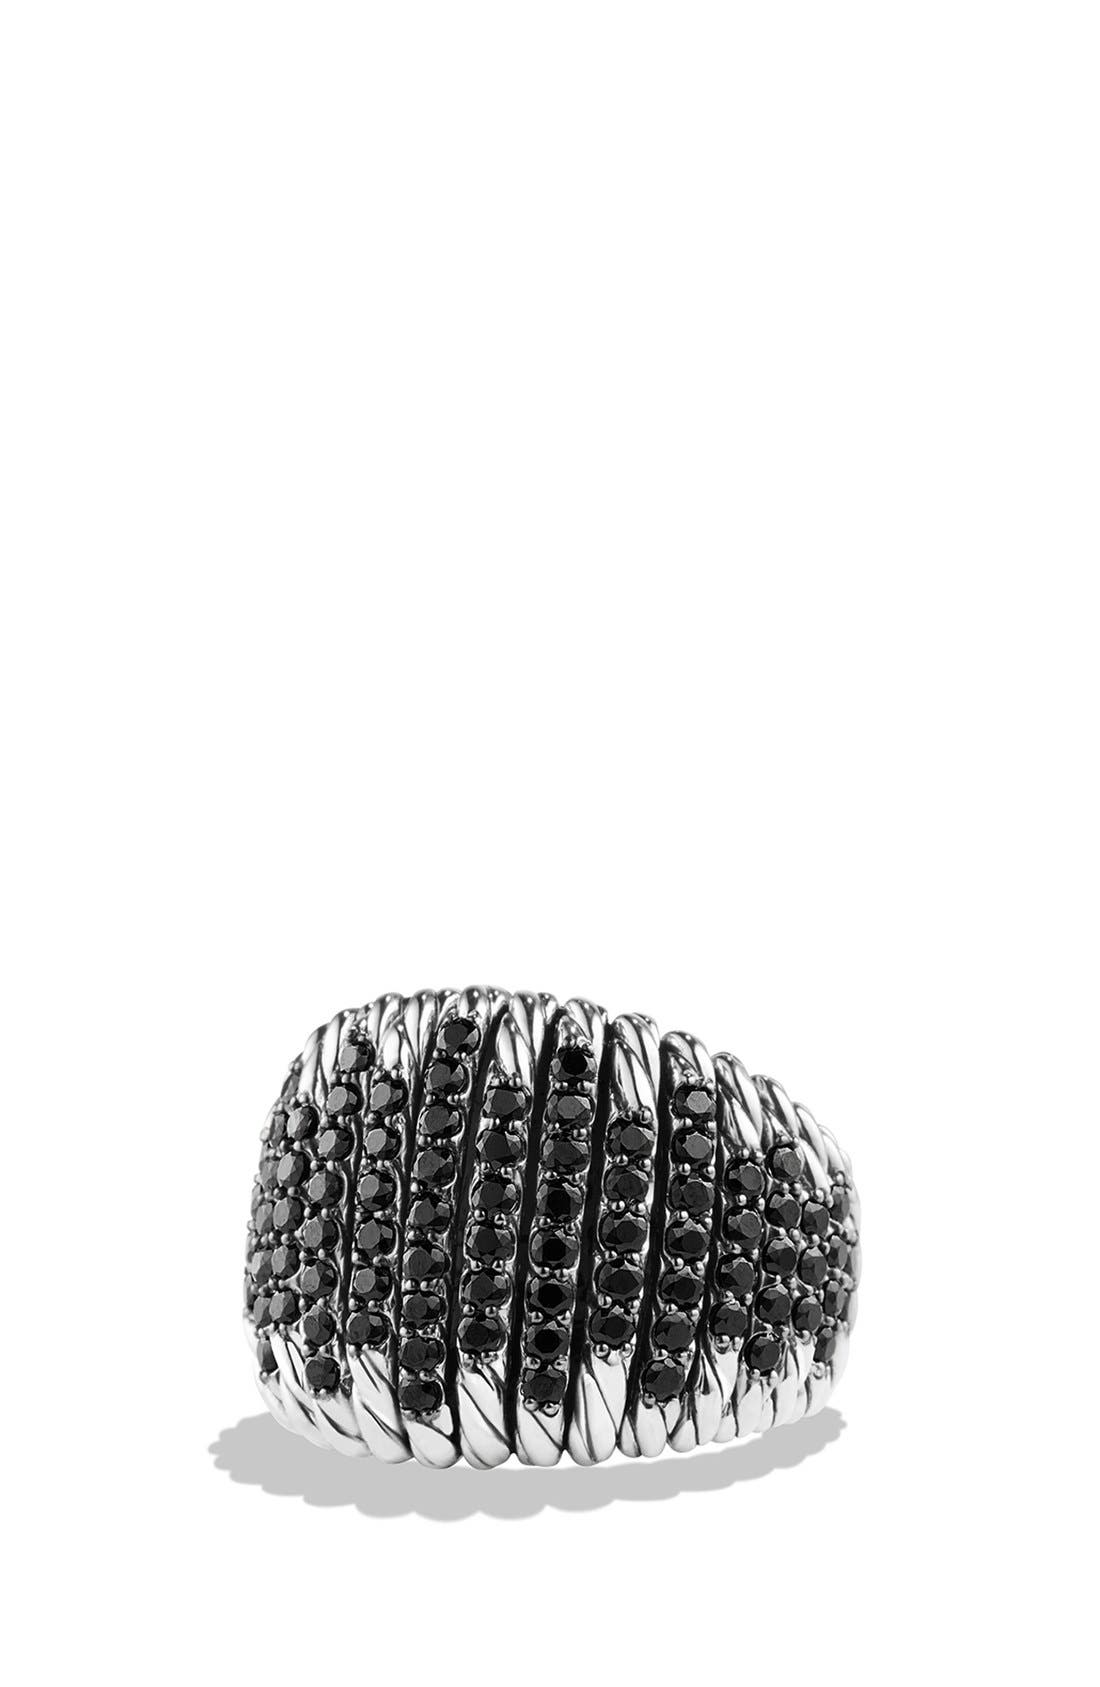 DAVID YURMAN,                             'Tempo' Ring with Spinel,                             Main thumbnail 1, color,                             BLACK SPINEL